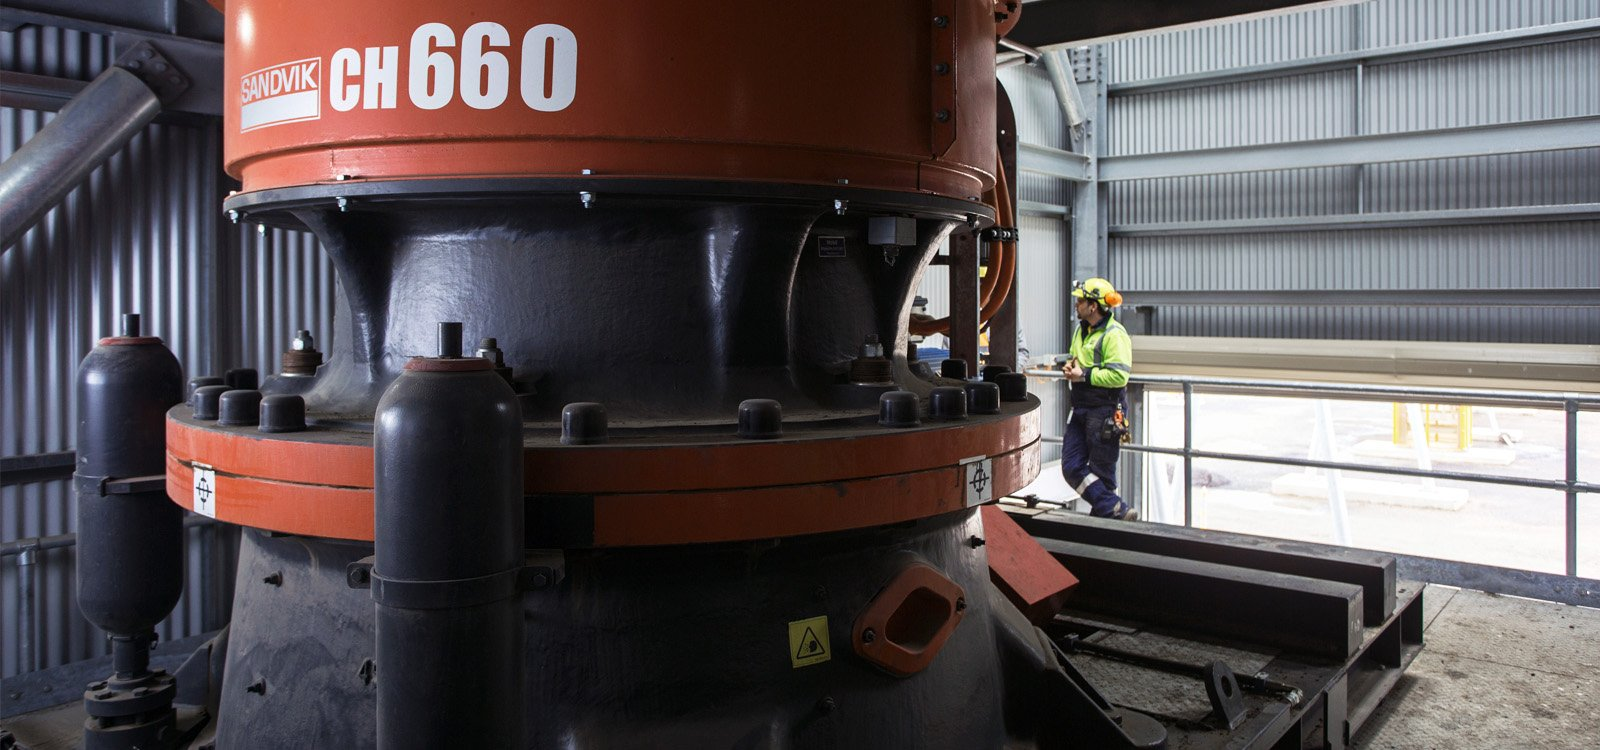 <p>Designed and supplied by Sandvik, Boral's processing plant has performed above targeted production rates.</p>